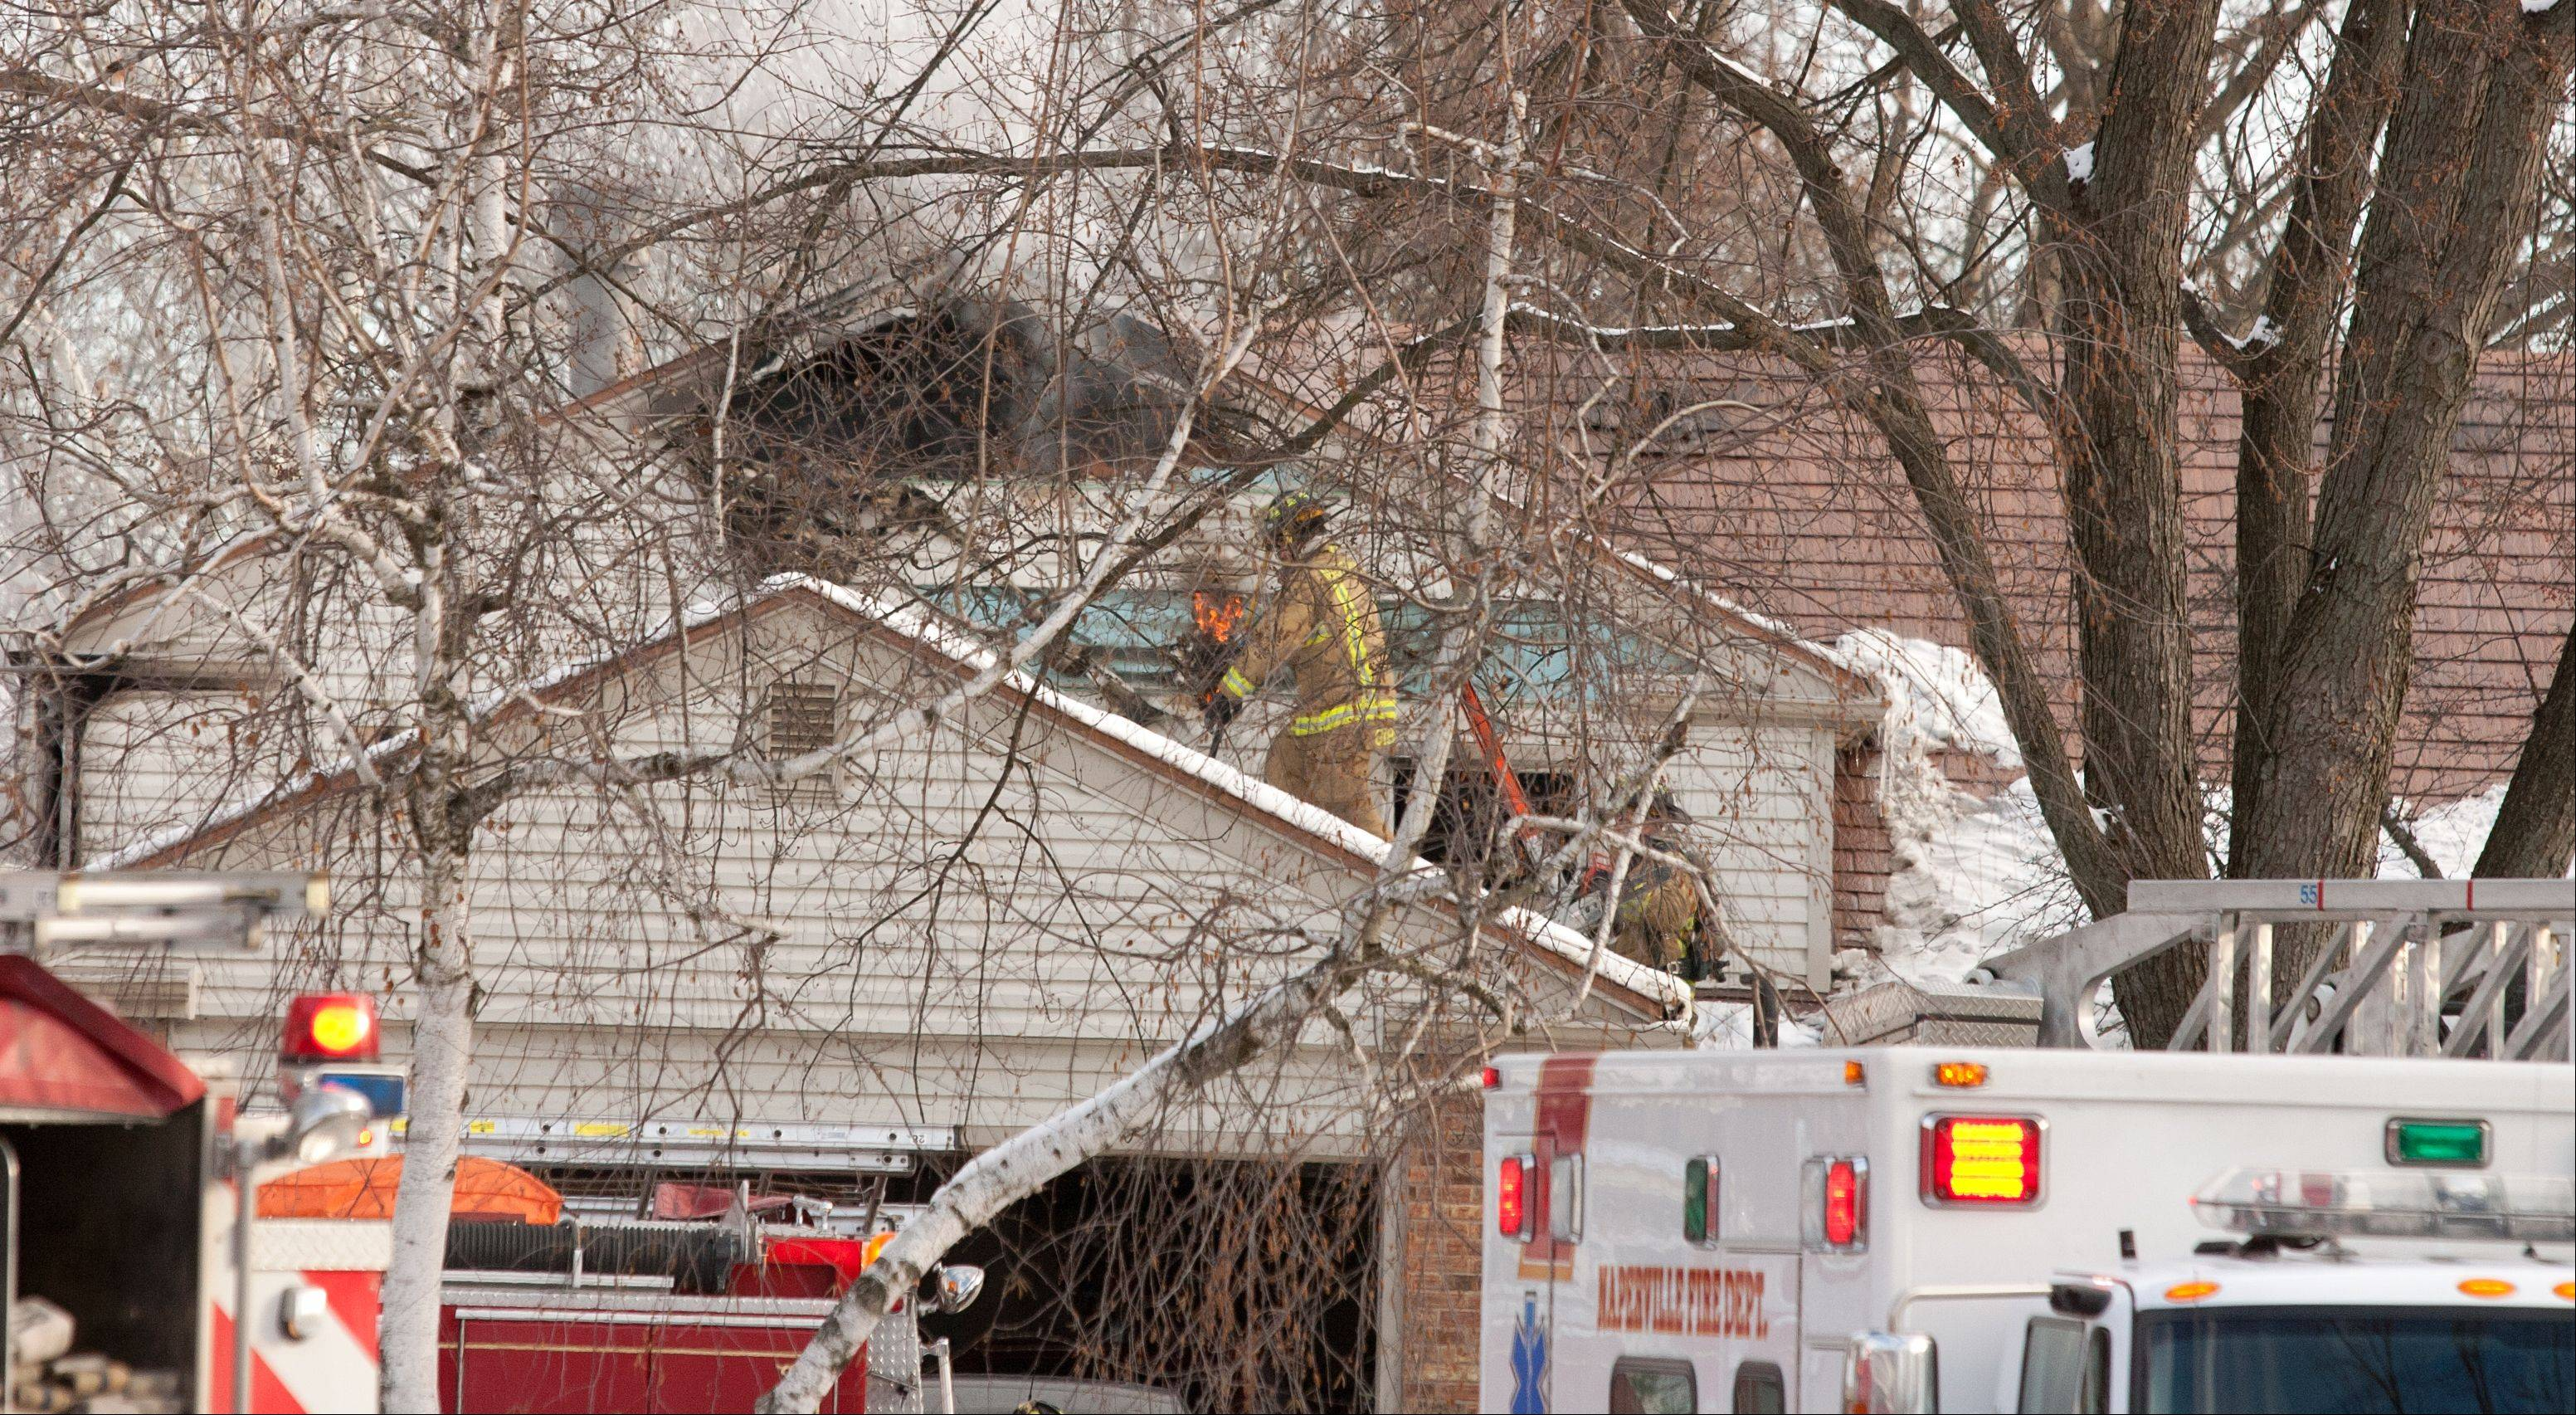 Naperville firefighters are still probing the cause of a house fire that killed two people Wednesday and injured three others.